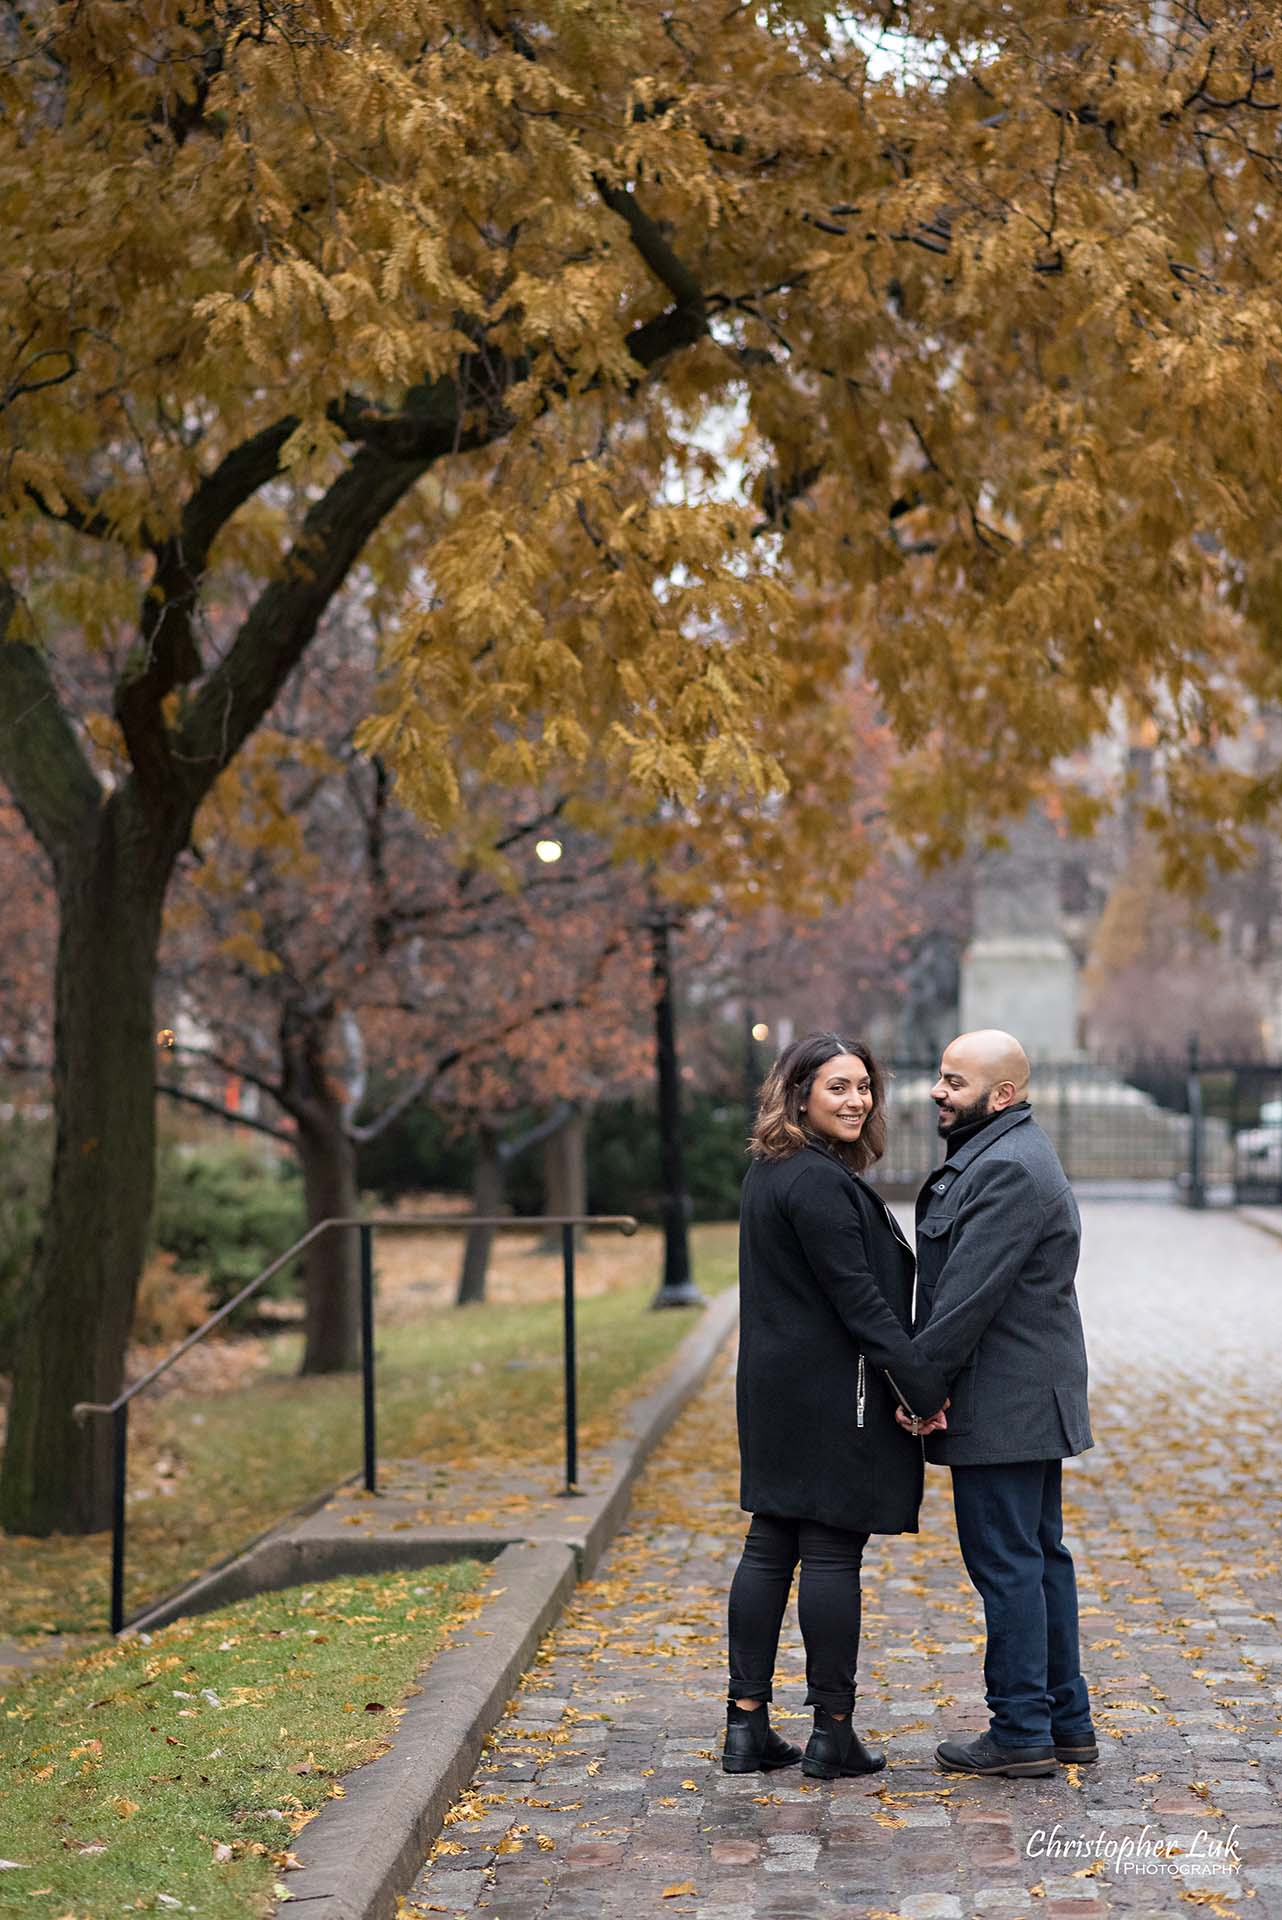 Christopher Luk Toronto Wedding Photographer - Toronto Osgoode Hall Surprise Proposal Engaged Engagement Will You Marry Me She Said Yes Natural Candid Photojournalistic - Fiancé Fiancée Bride Groom Walking Autumn Fall Leaves Her